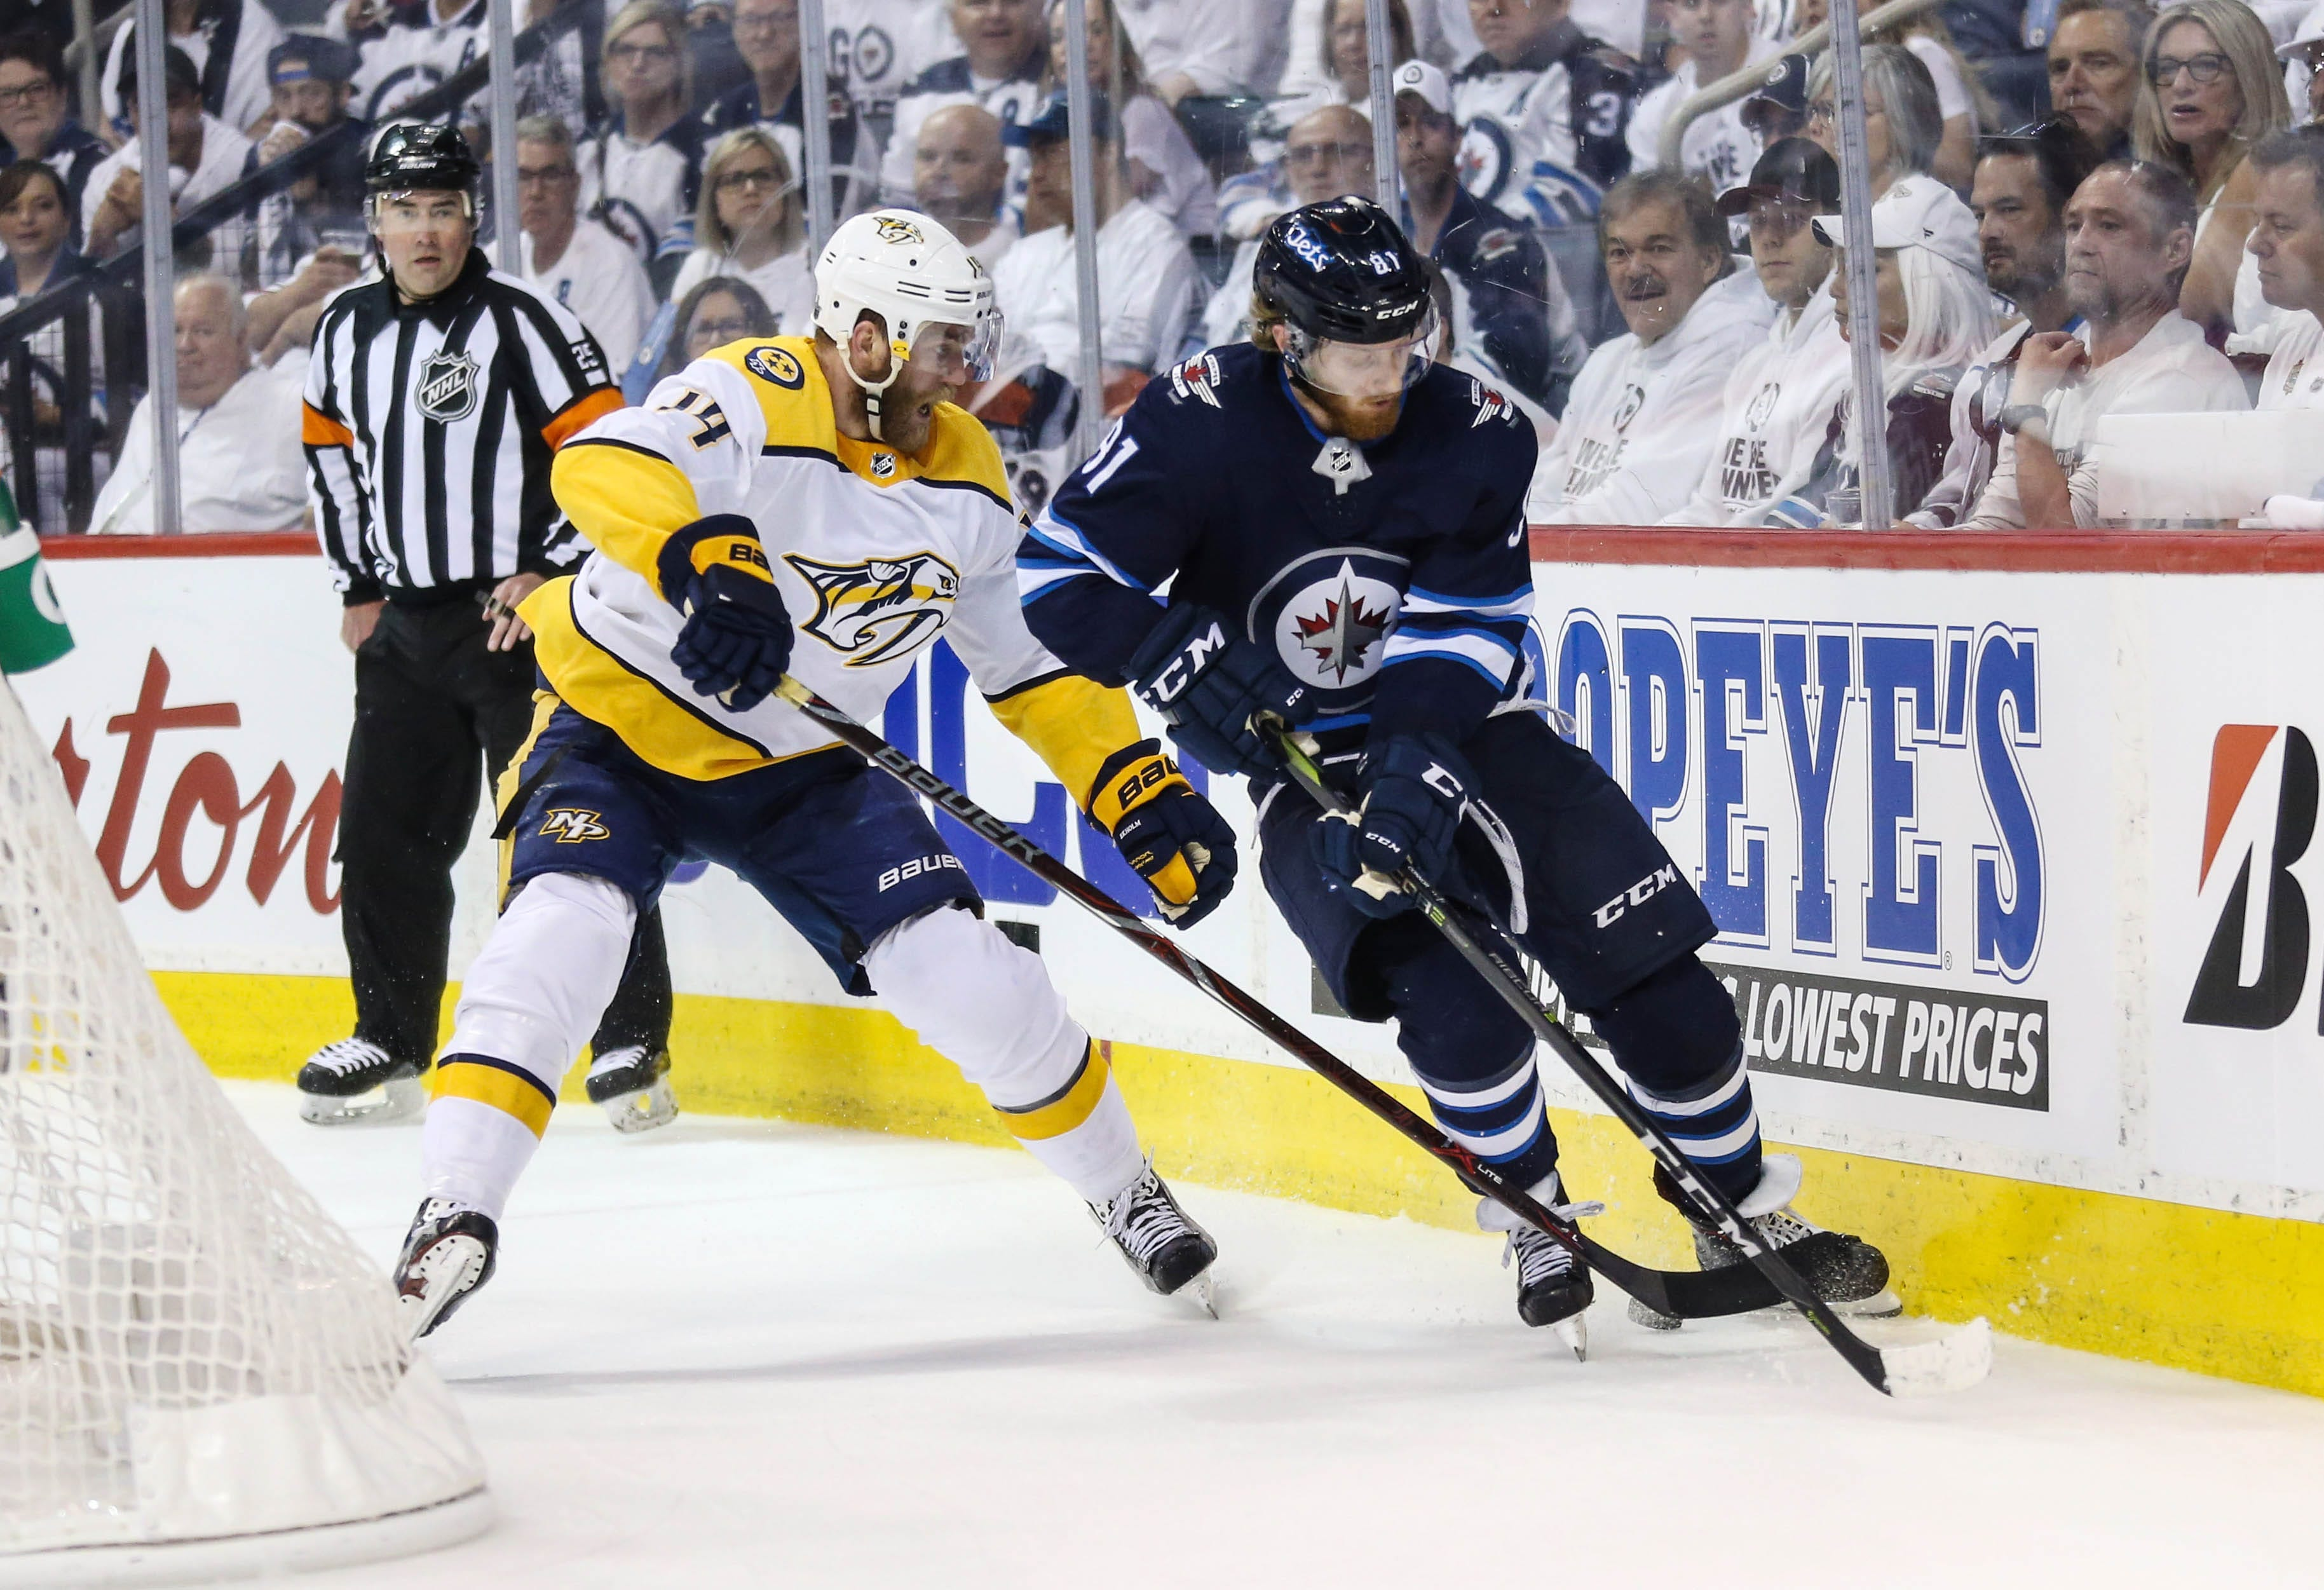 NHL playoffs: What to watch for in Predators-Jets Game 7